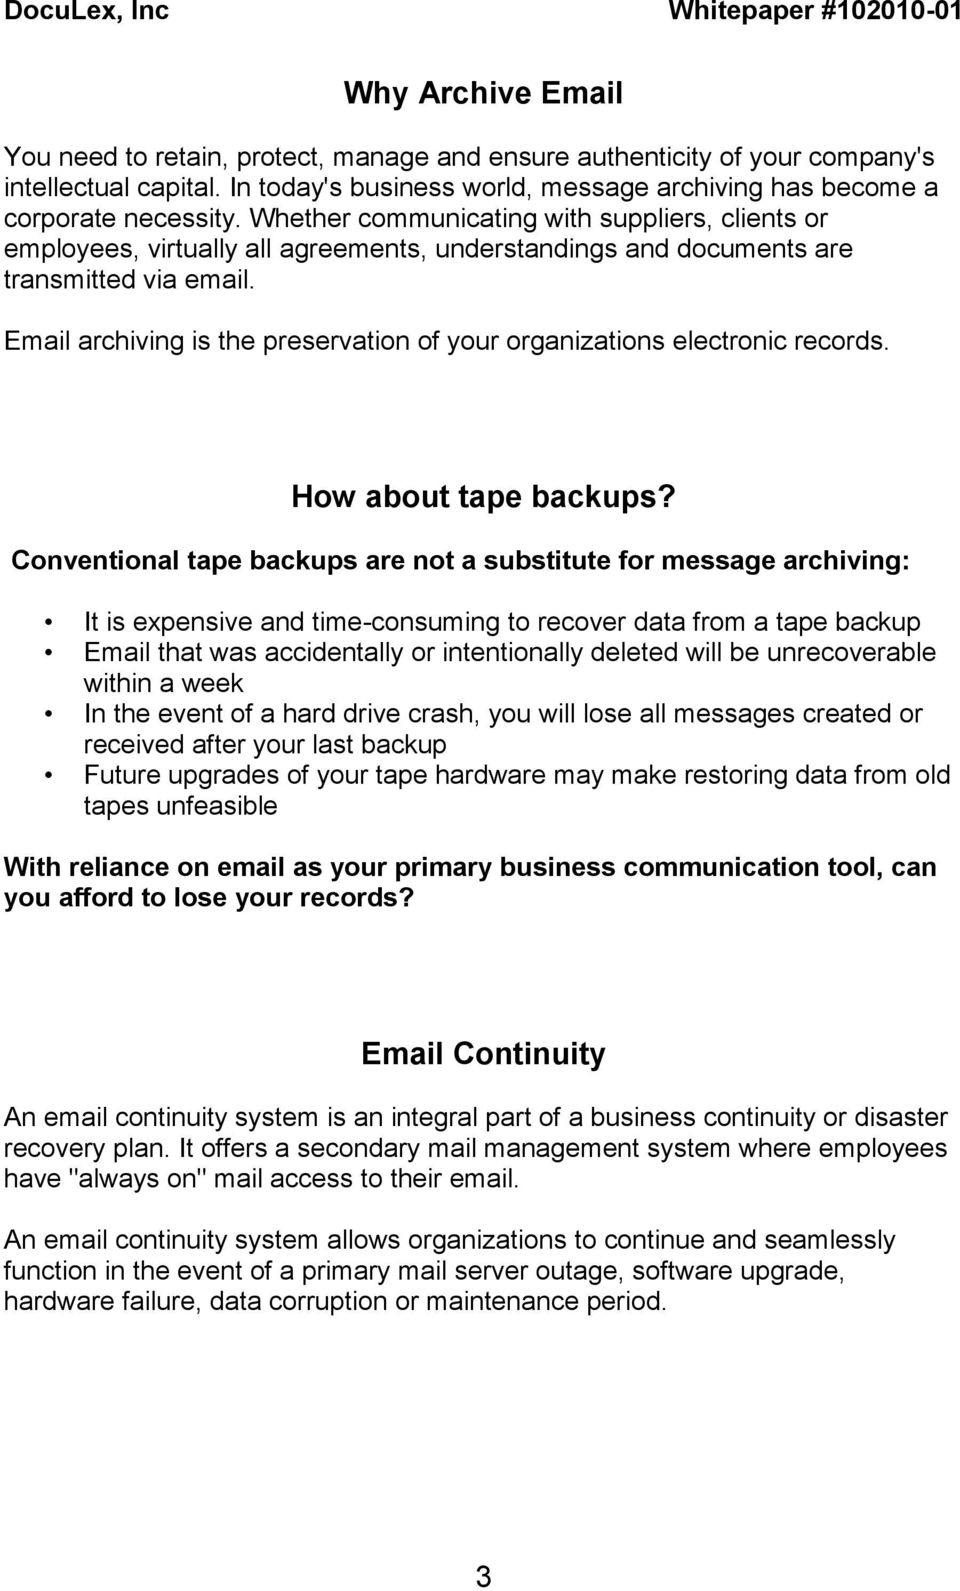 Email archiving is the preservation of your organizations electronic records. How about tape backups?